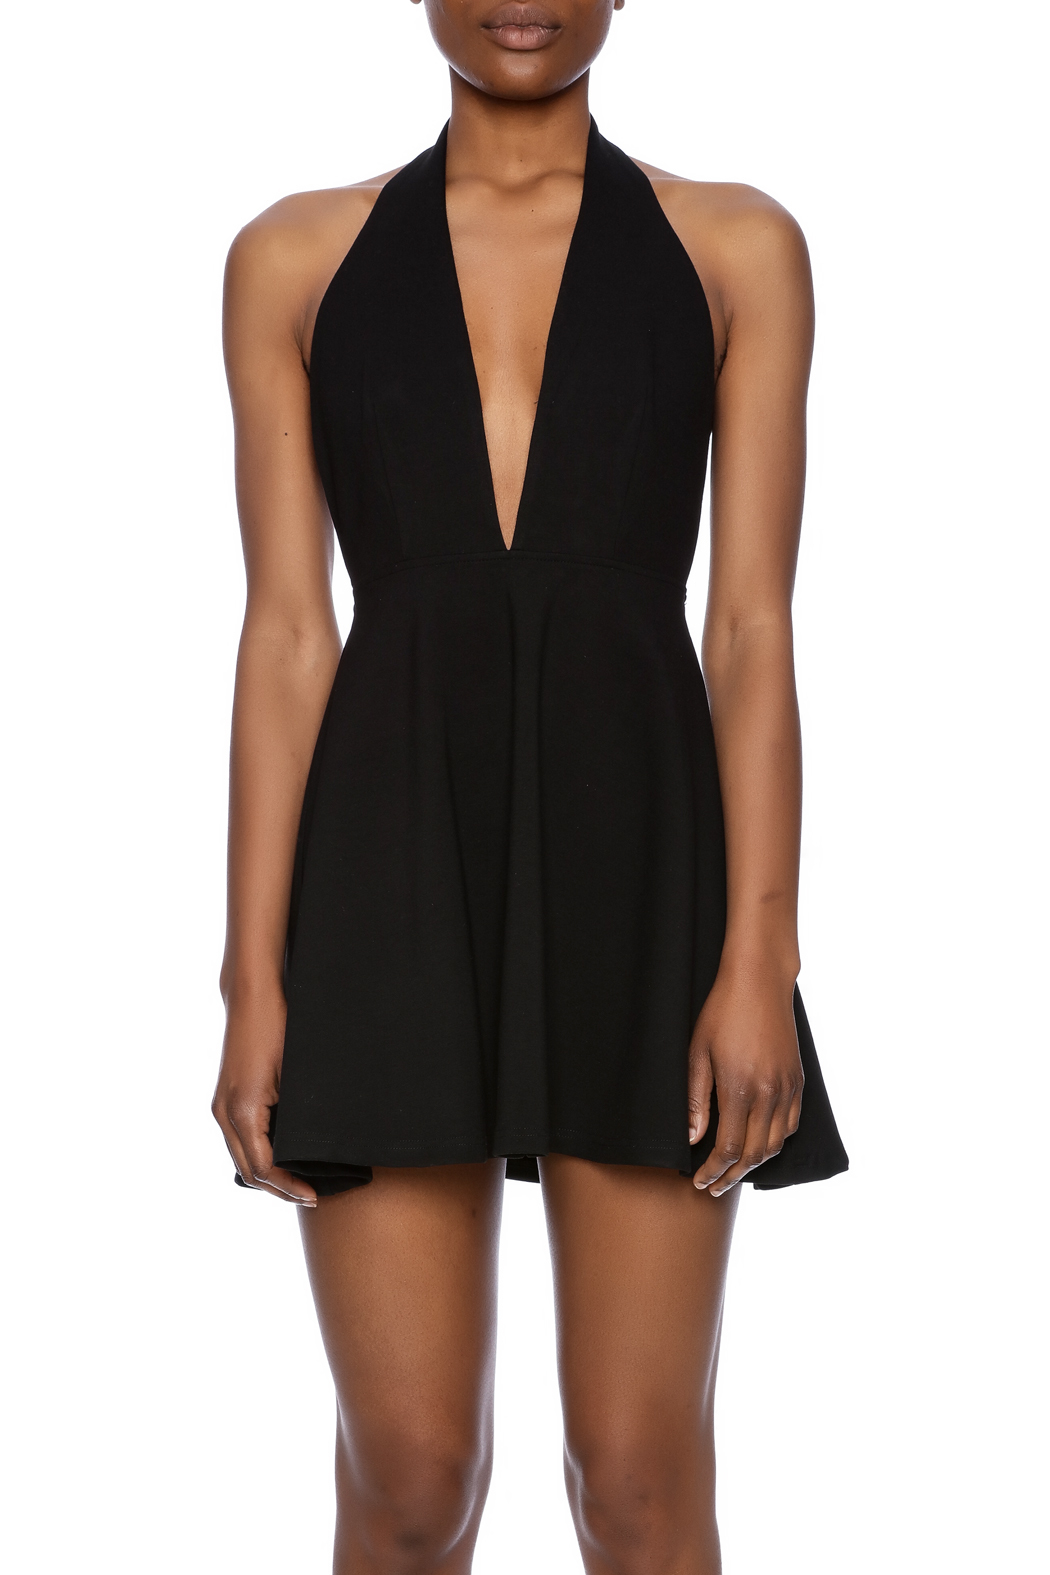 Alythea Deep V Halter Dress from West Village by Pink ...